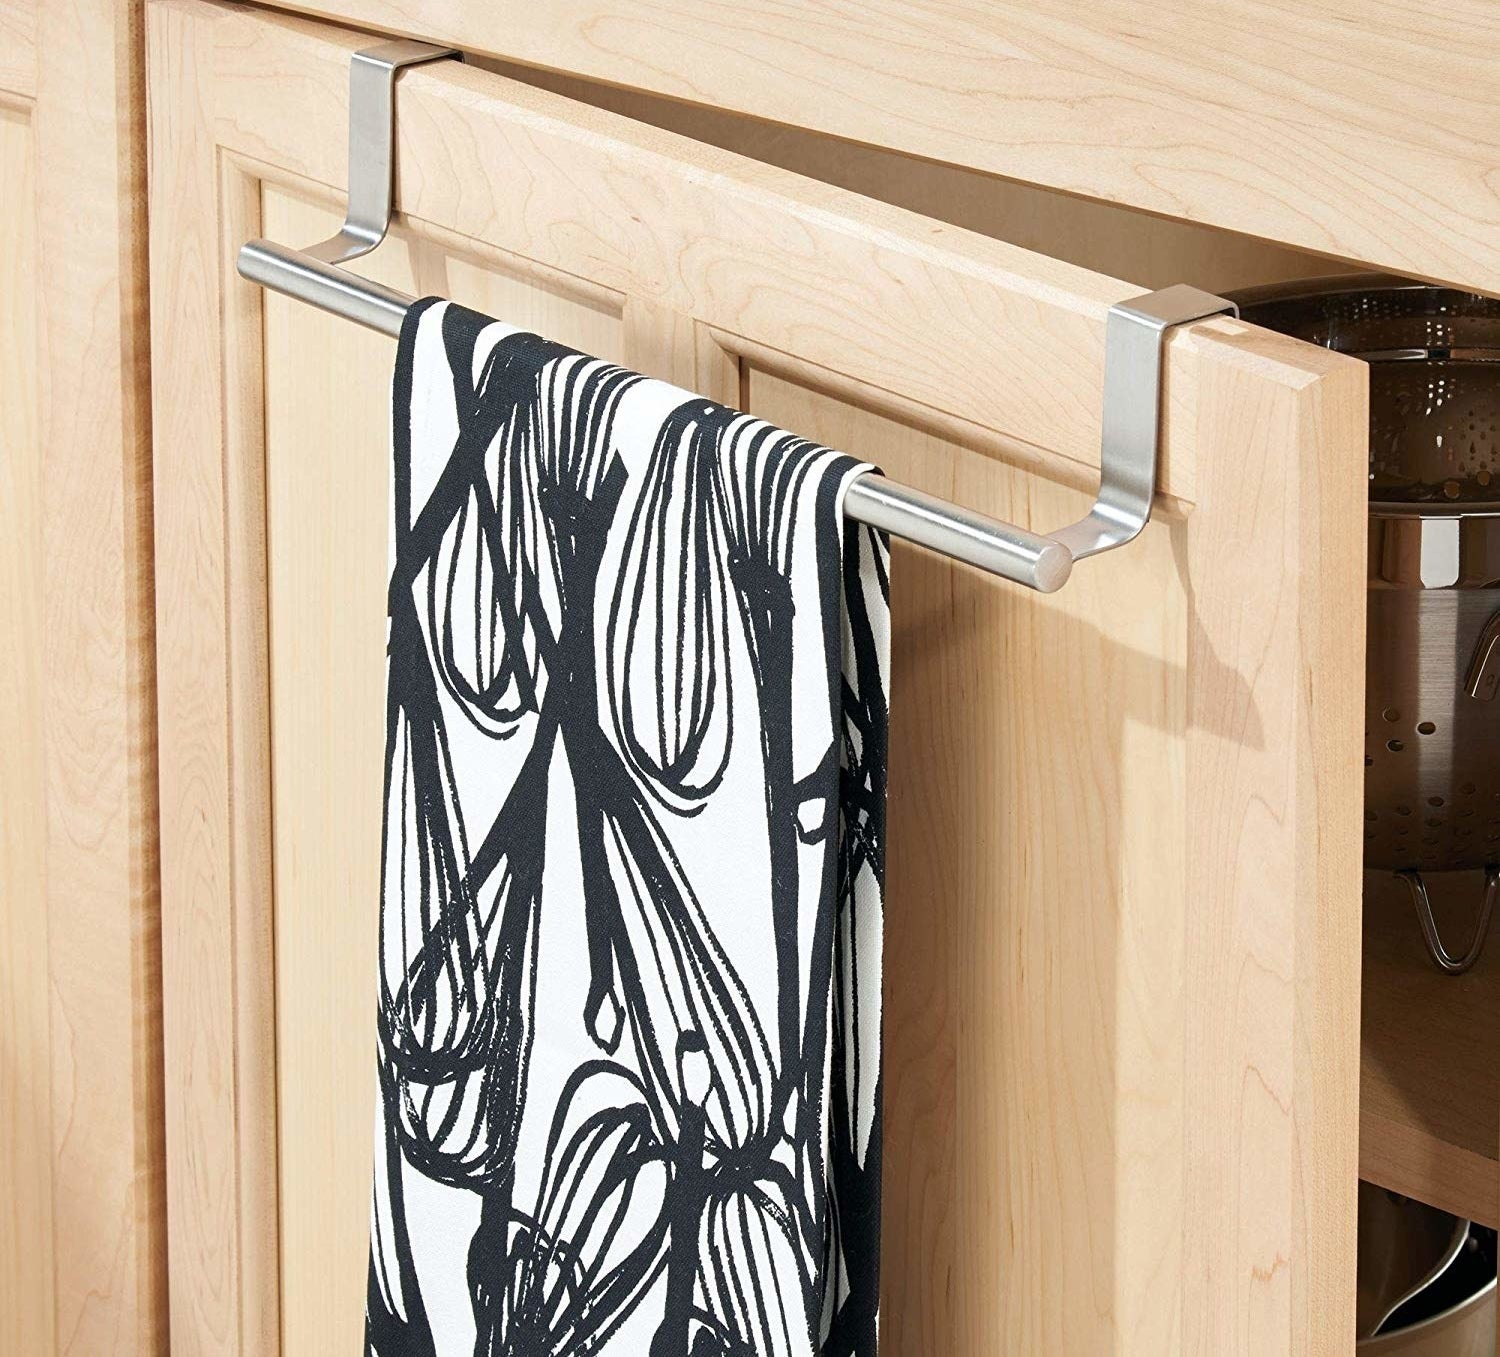 A metal bar hanging over a kitchen cabinet, holding a folded dish towel